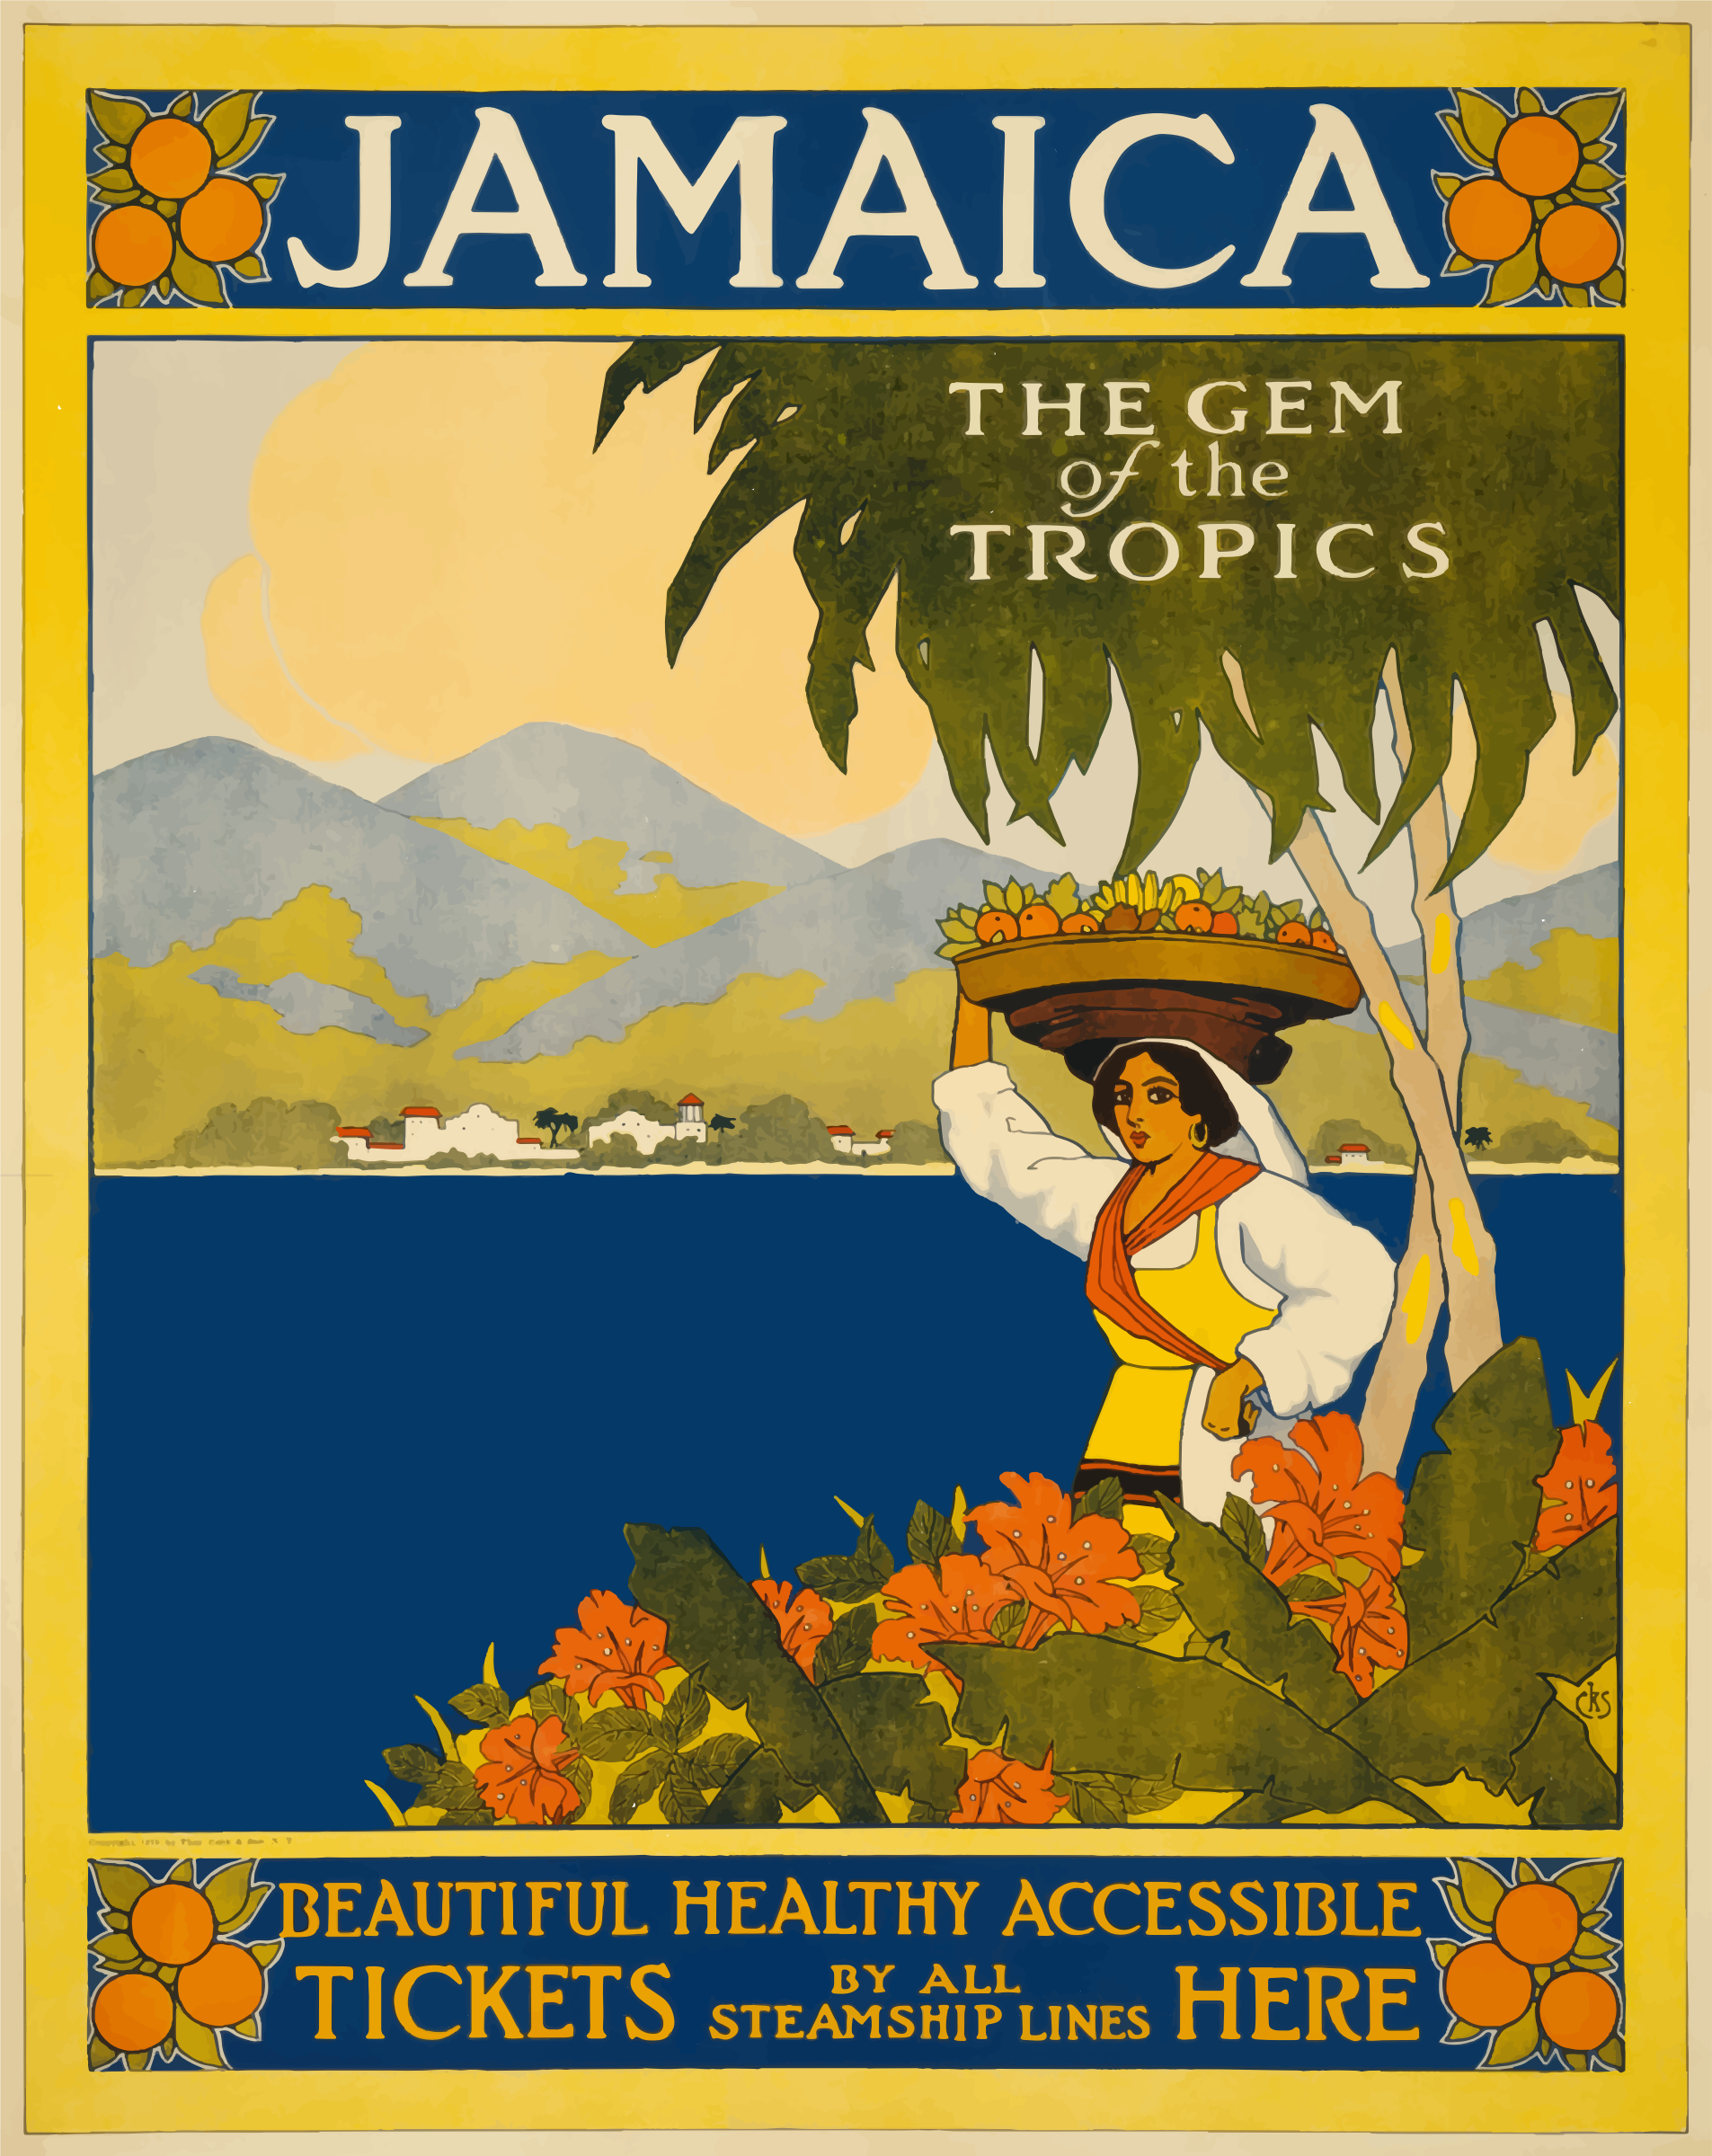 Jamaica The Gem Of The Tropics Vintage Travel Poster 1910 by GDJ